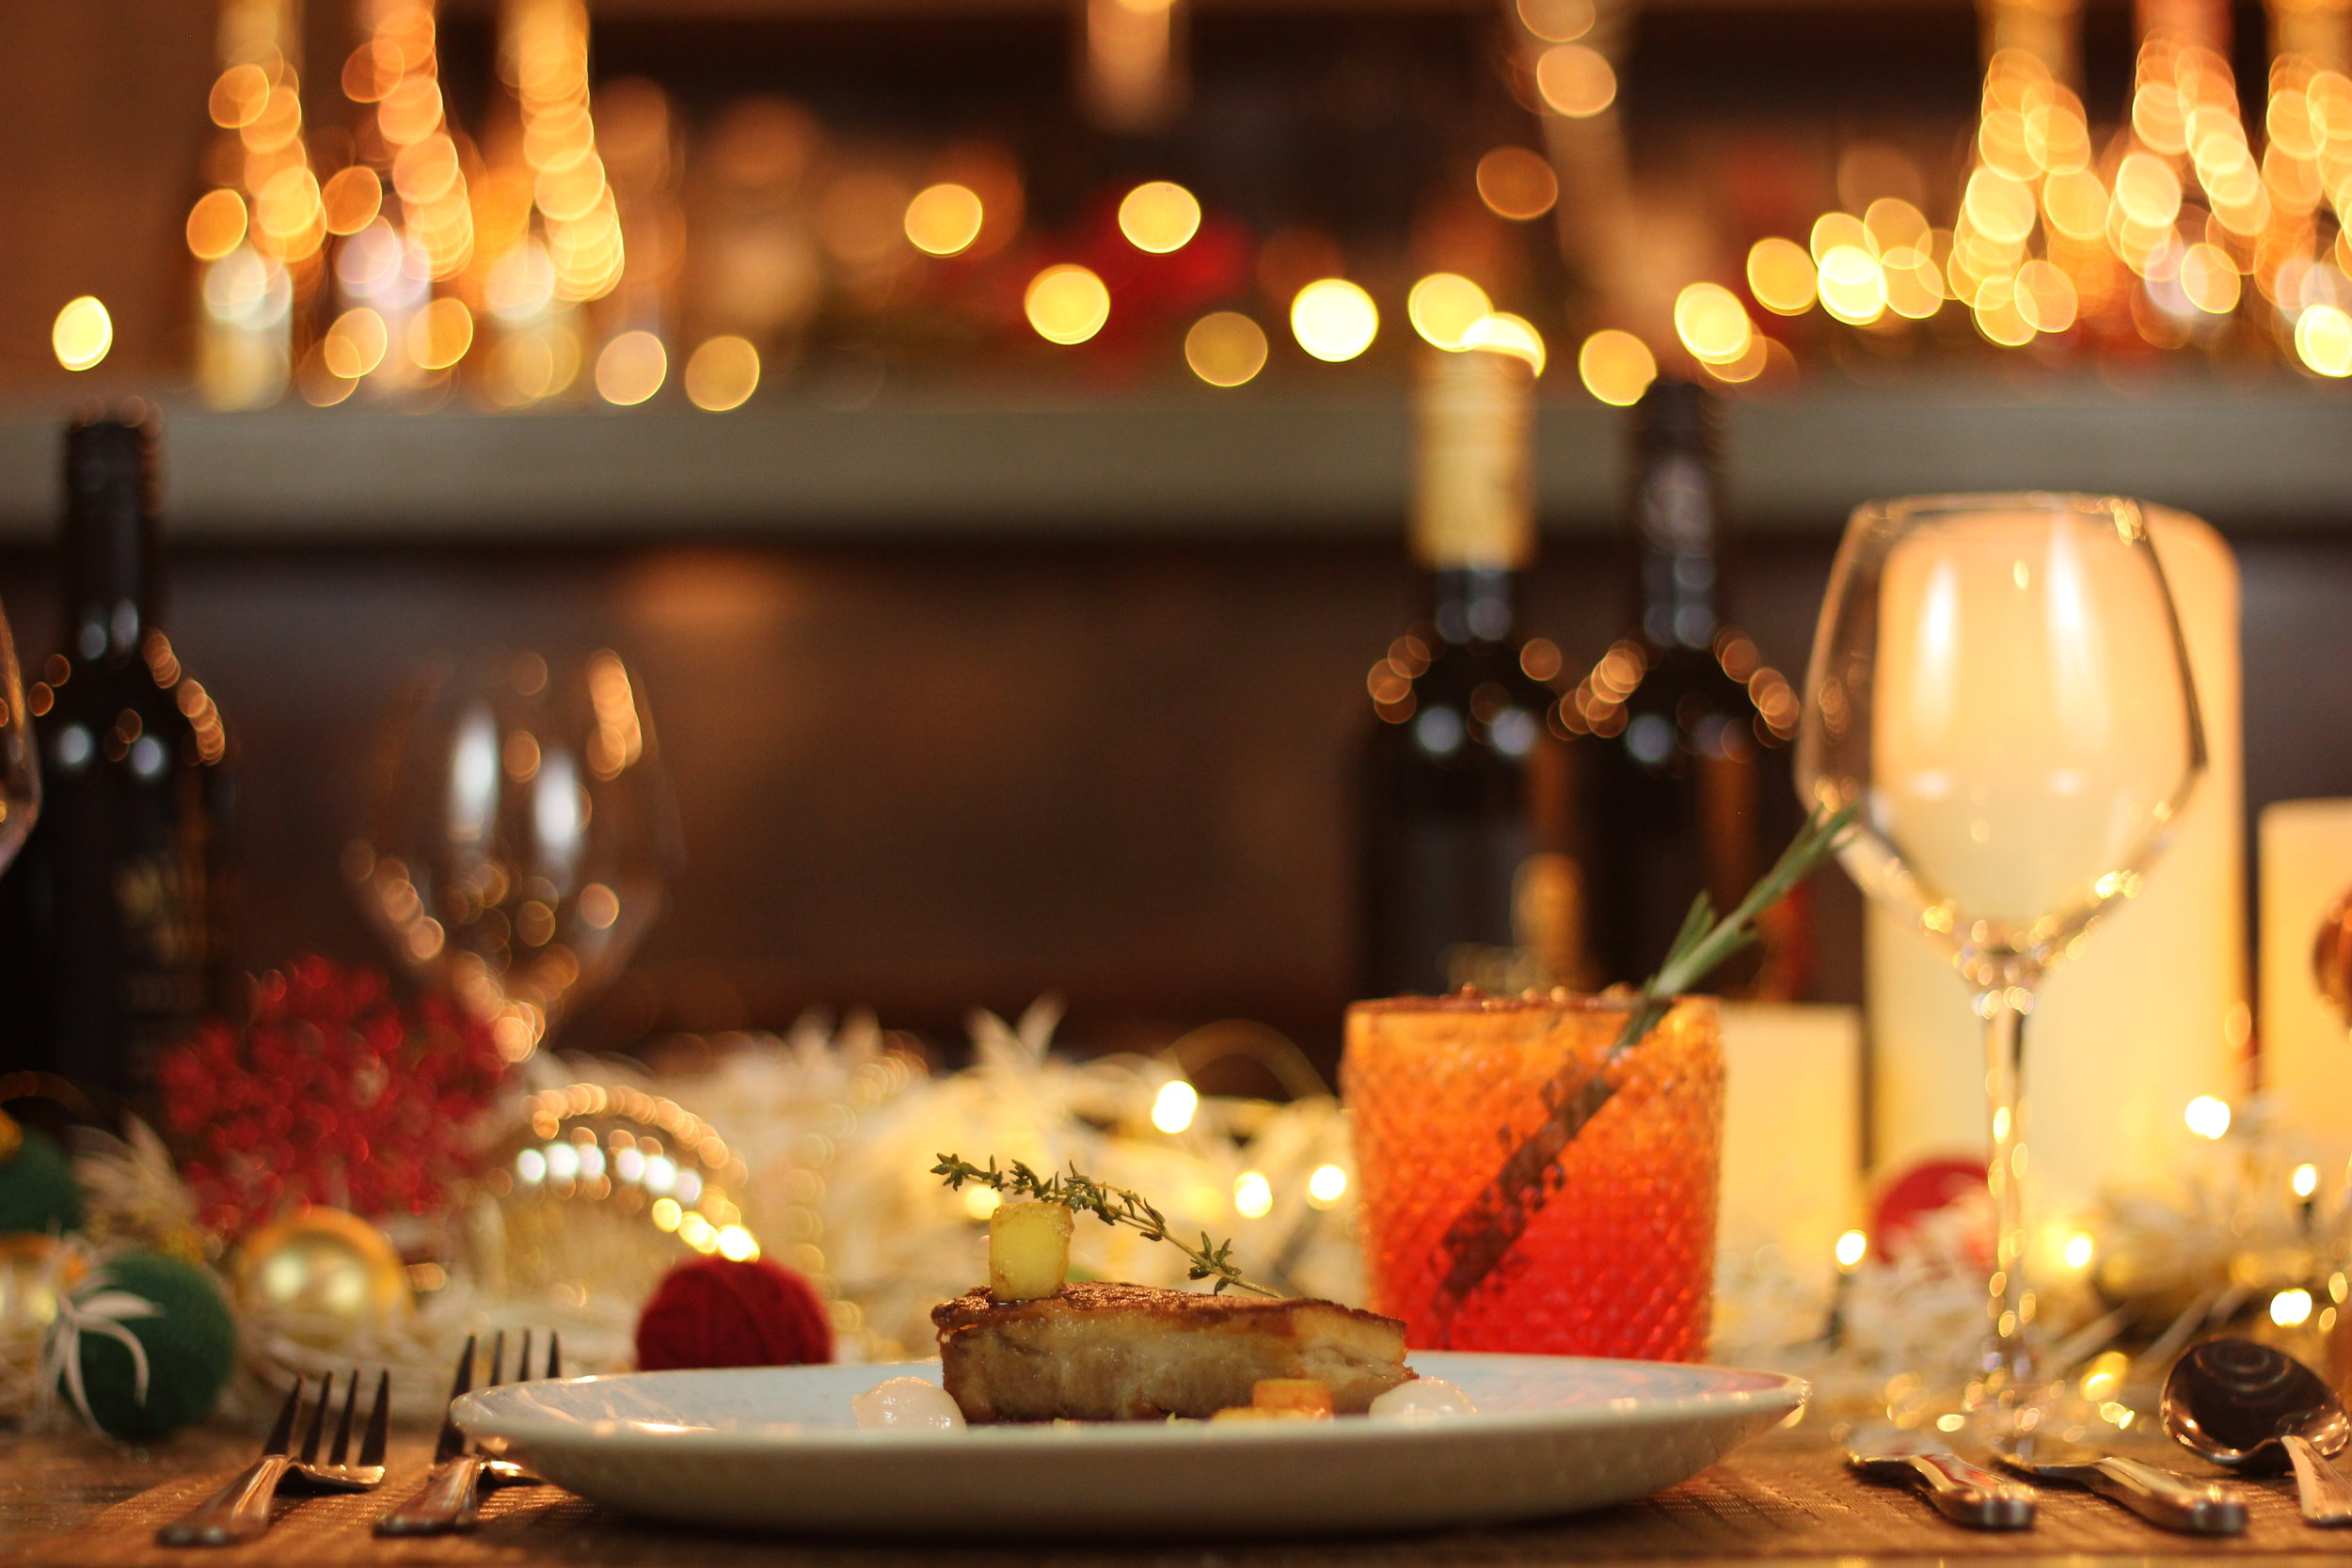 Get Festive at Gin71